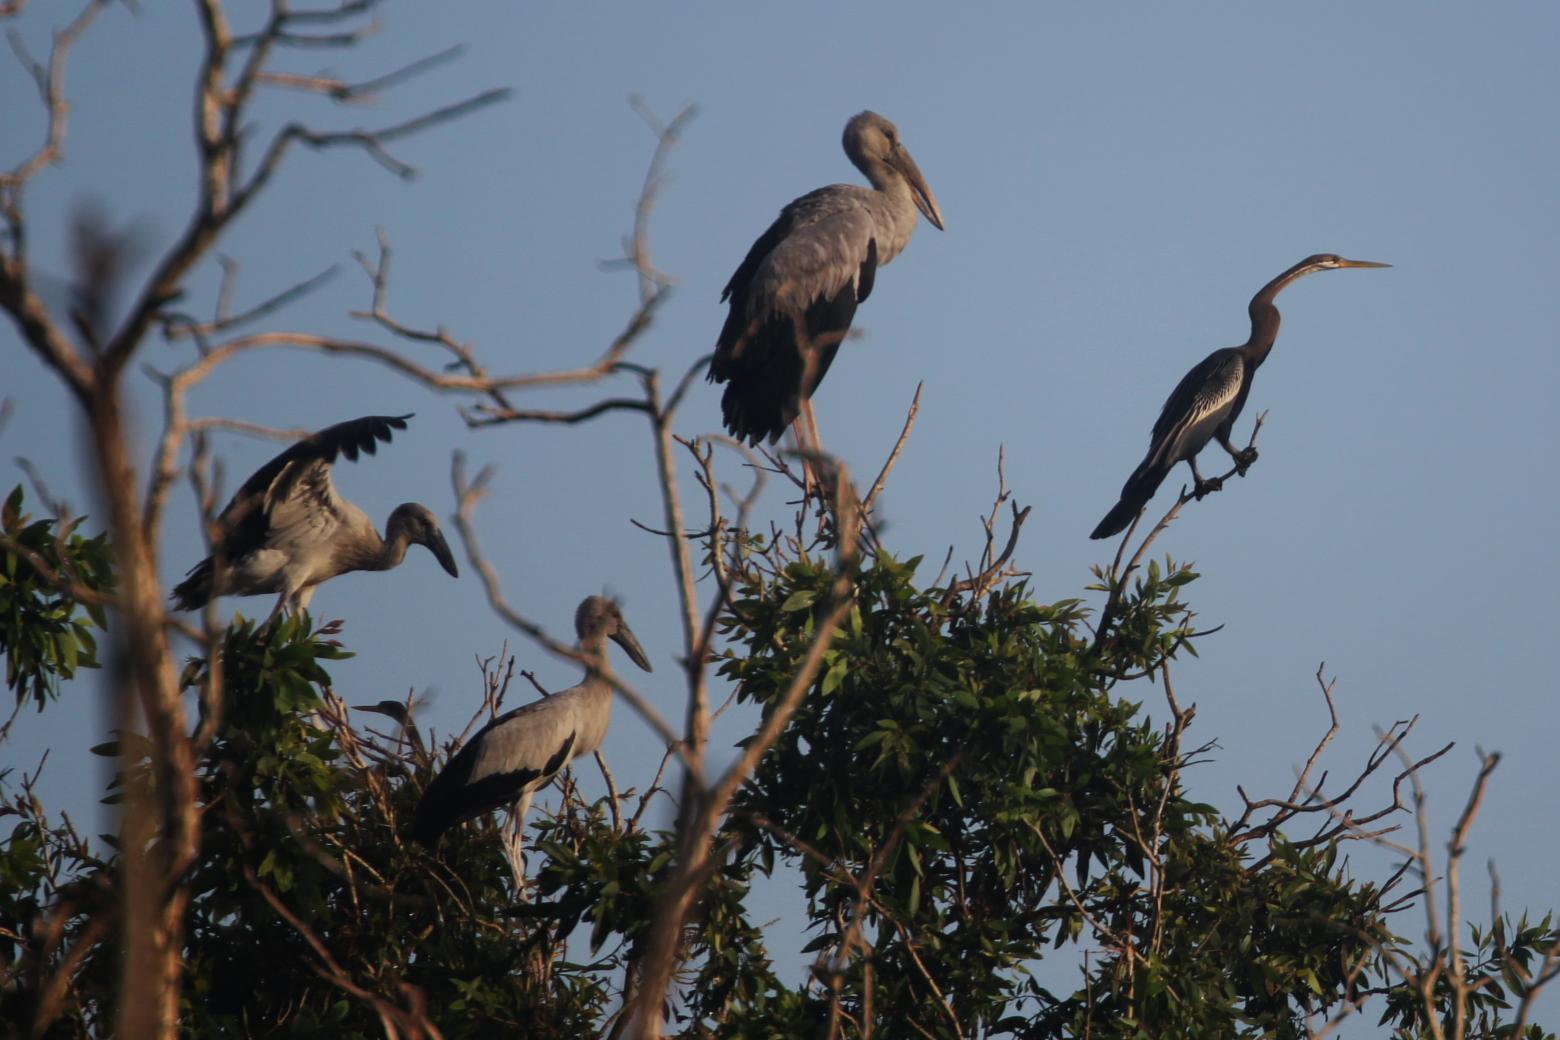 Rich in biodiversity: U Minh Thuong National Park. Copyright Sharon Brown.